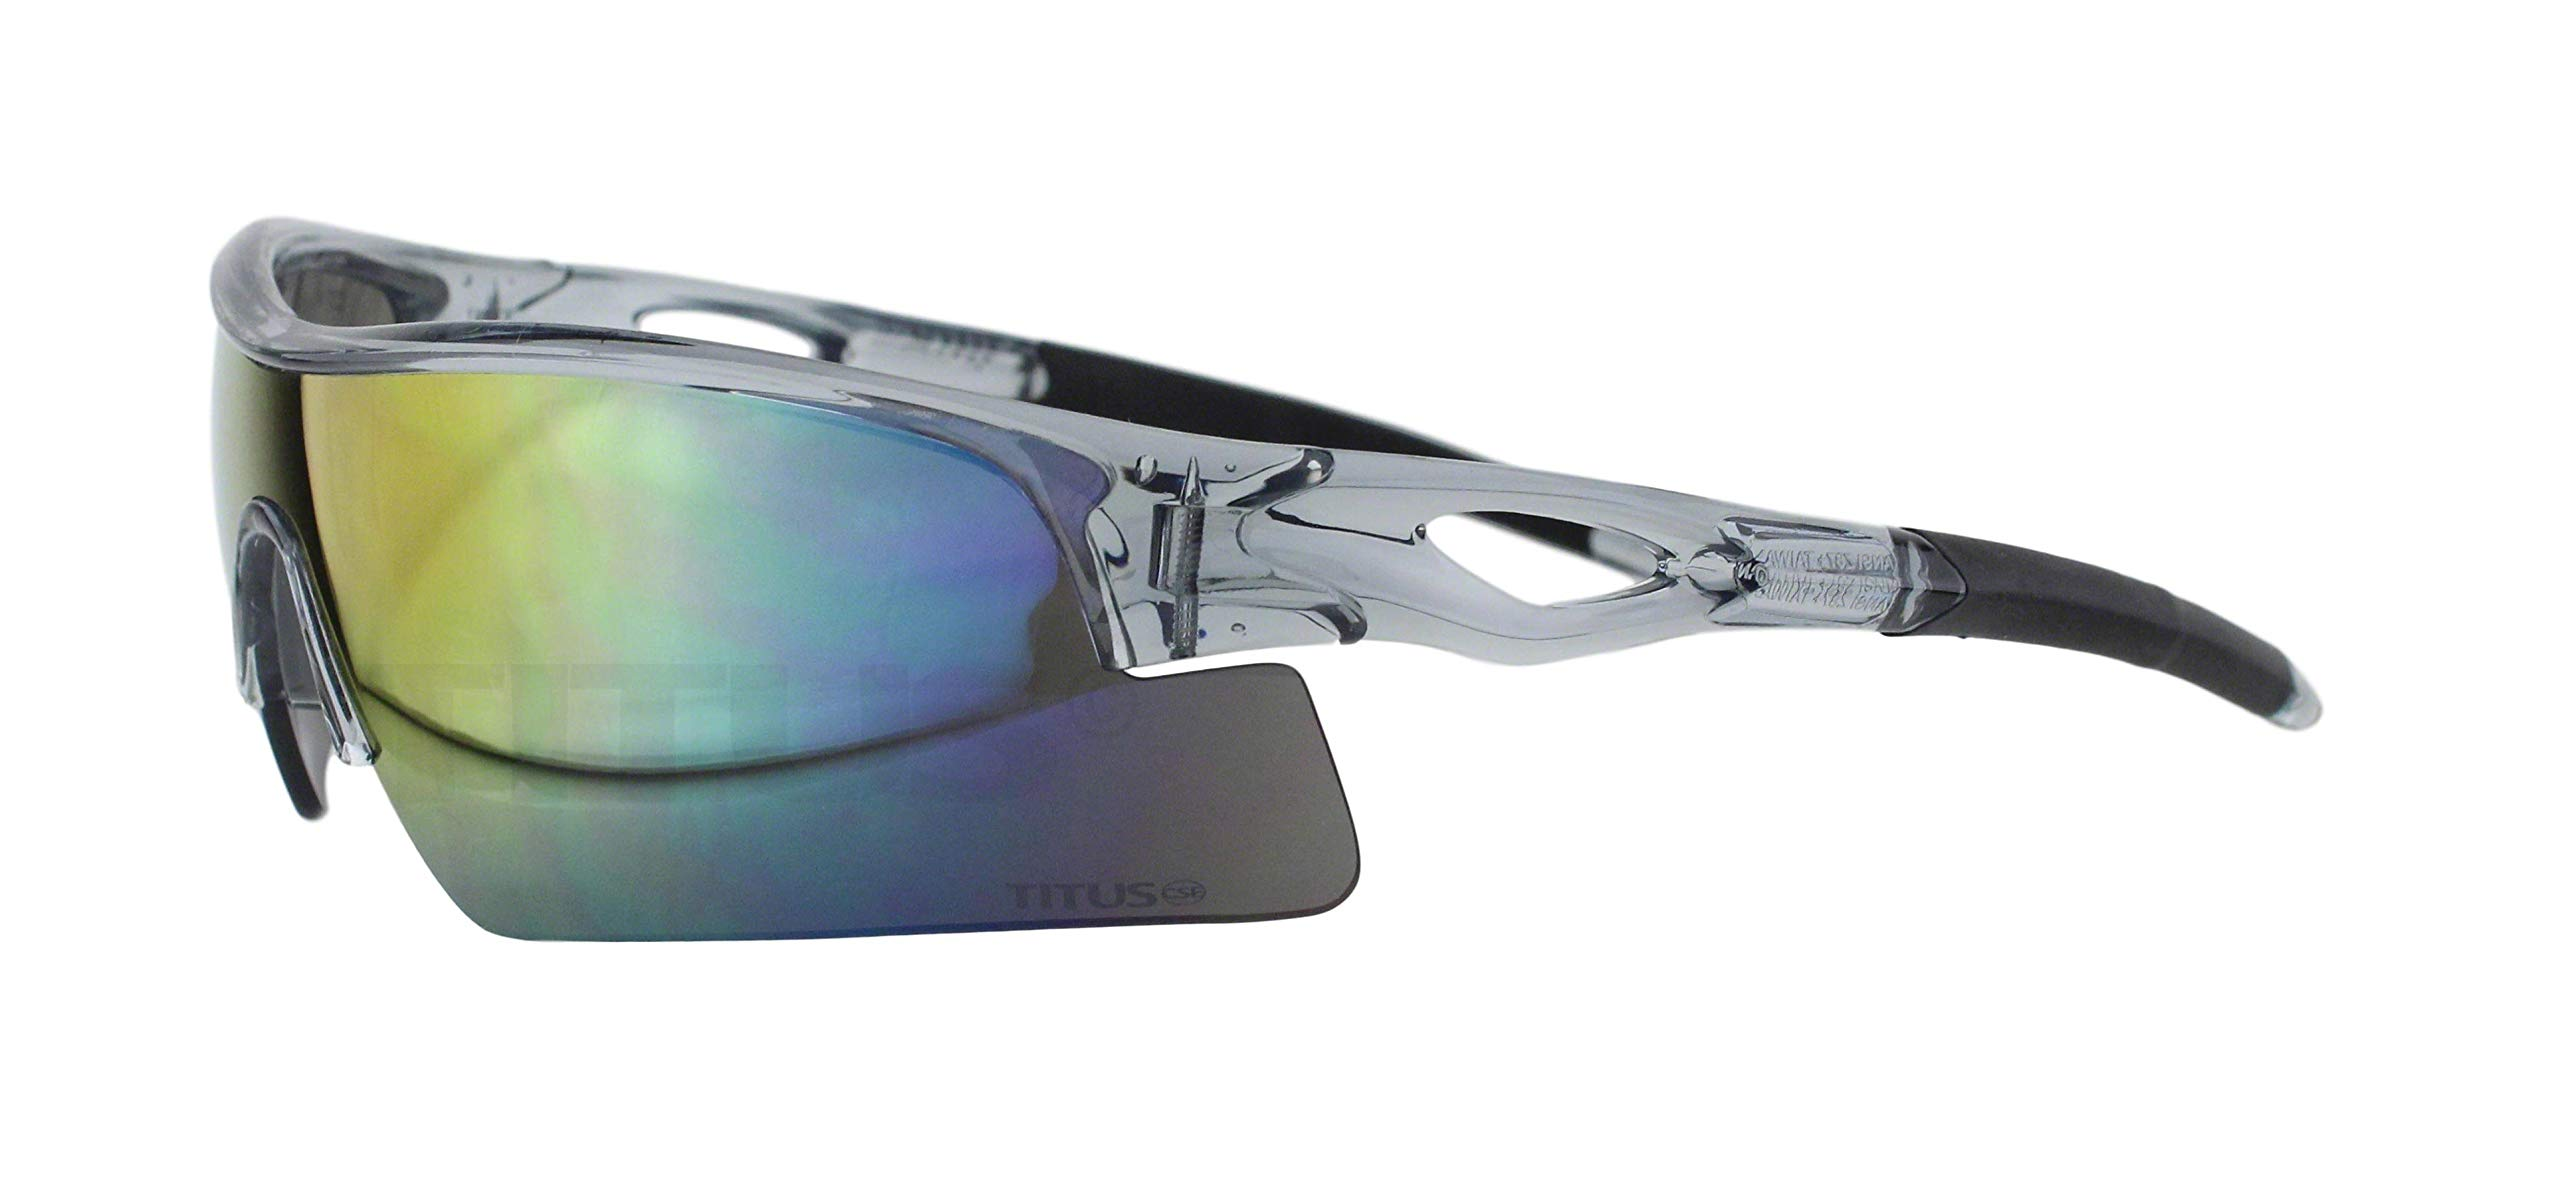 Titus All-Sports Frame Safety Glasses (with Pouch, Grey Frame - Mirrored Lens) by Titus